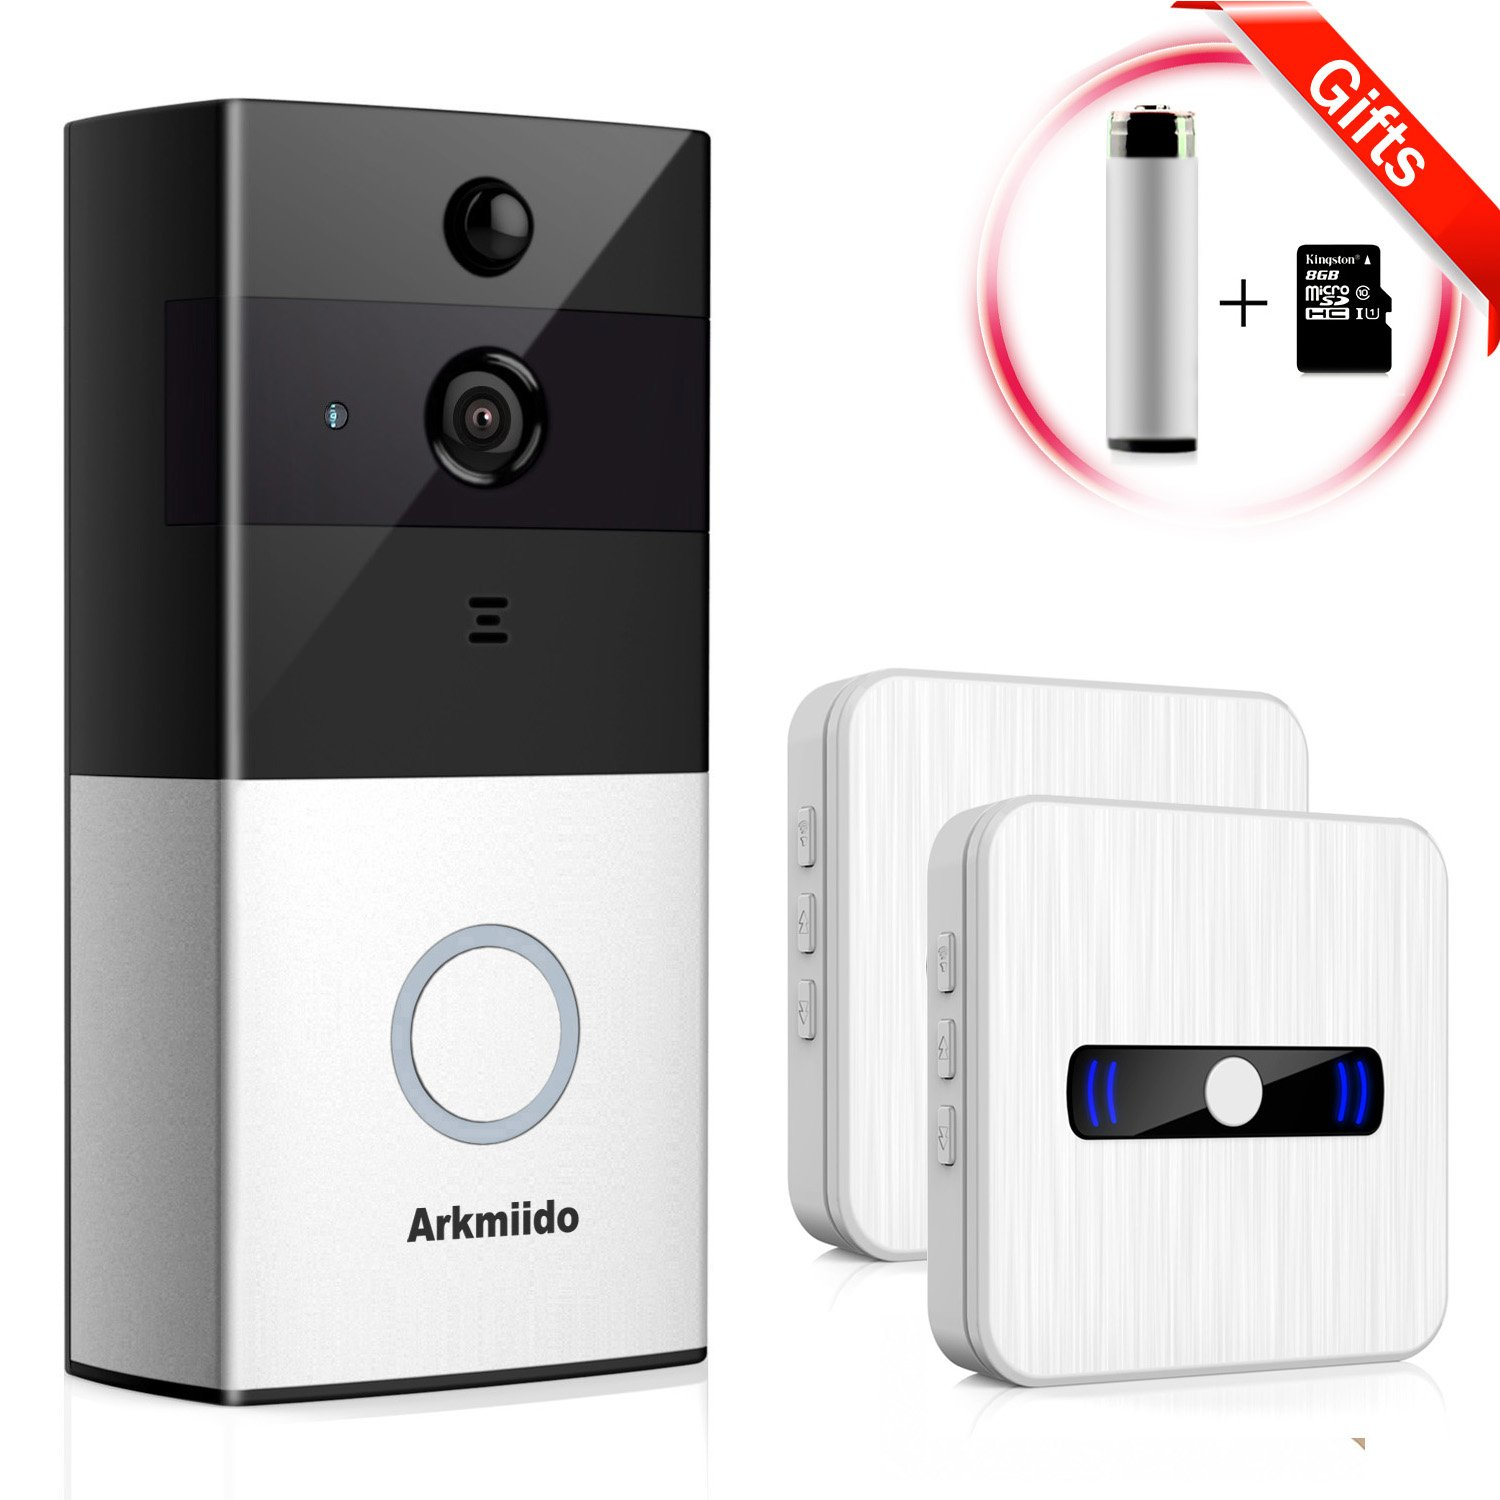 Arkmiido WiFi Wireless Enabled Video Doorbell Camera [ 1 Battery Activatable ] + 2 Plug Waterproof Chime Indoor Receiver by Arkmiido